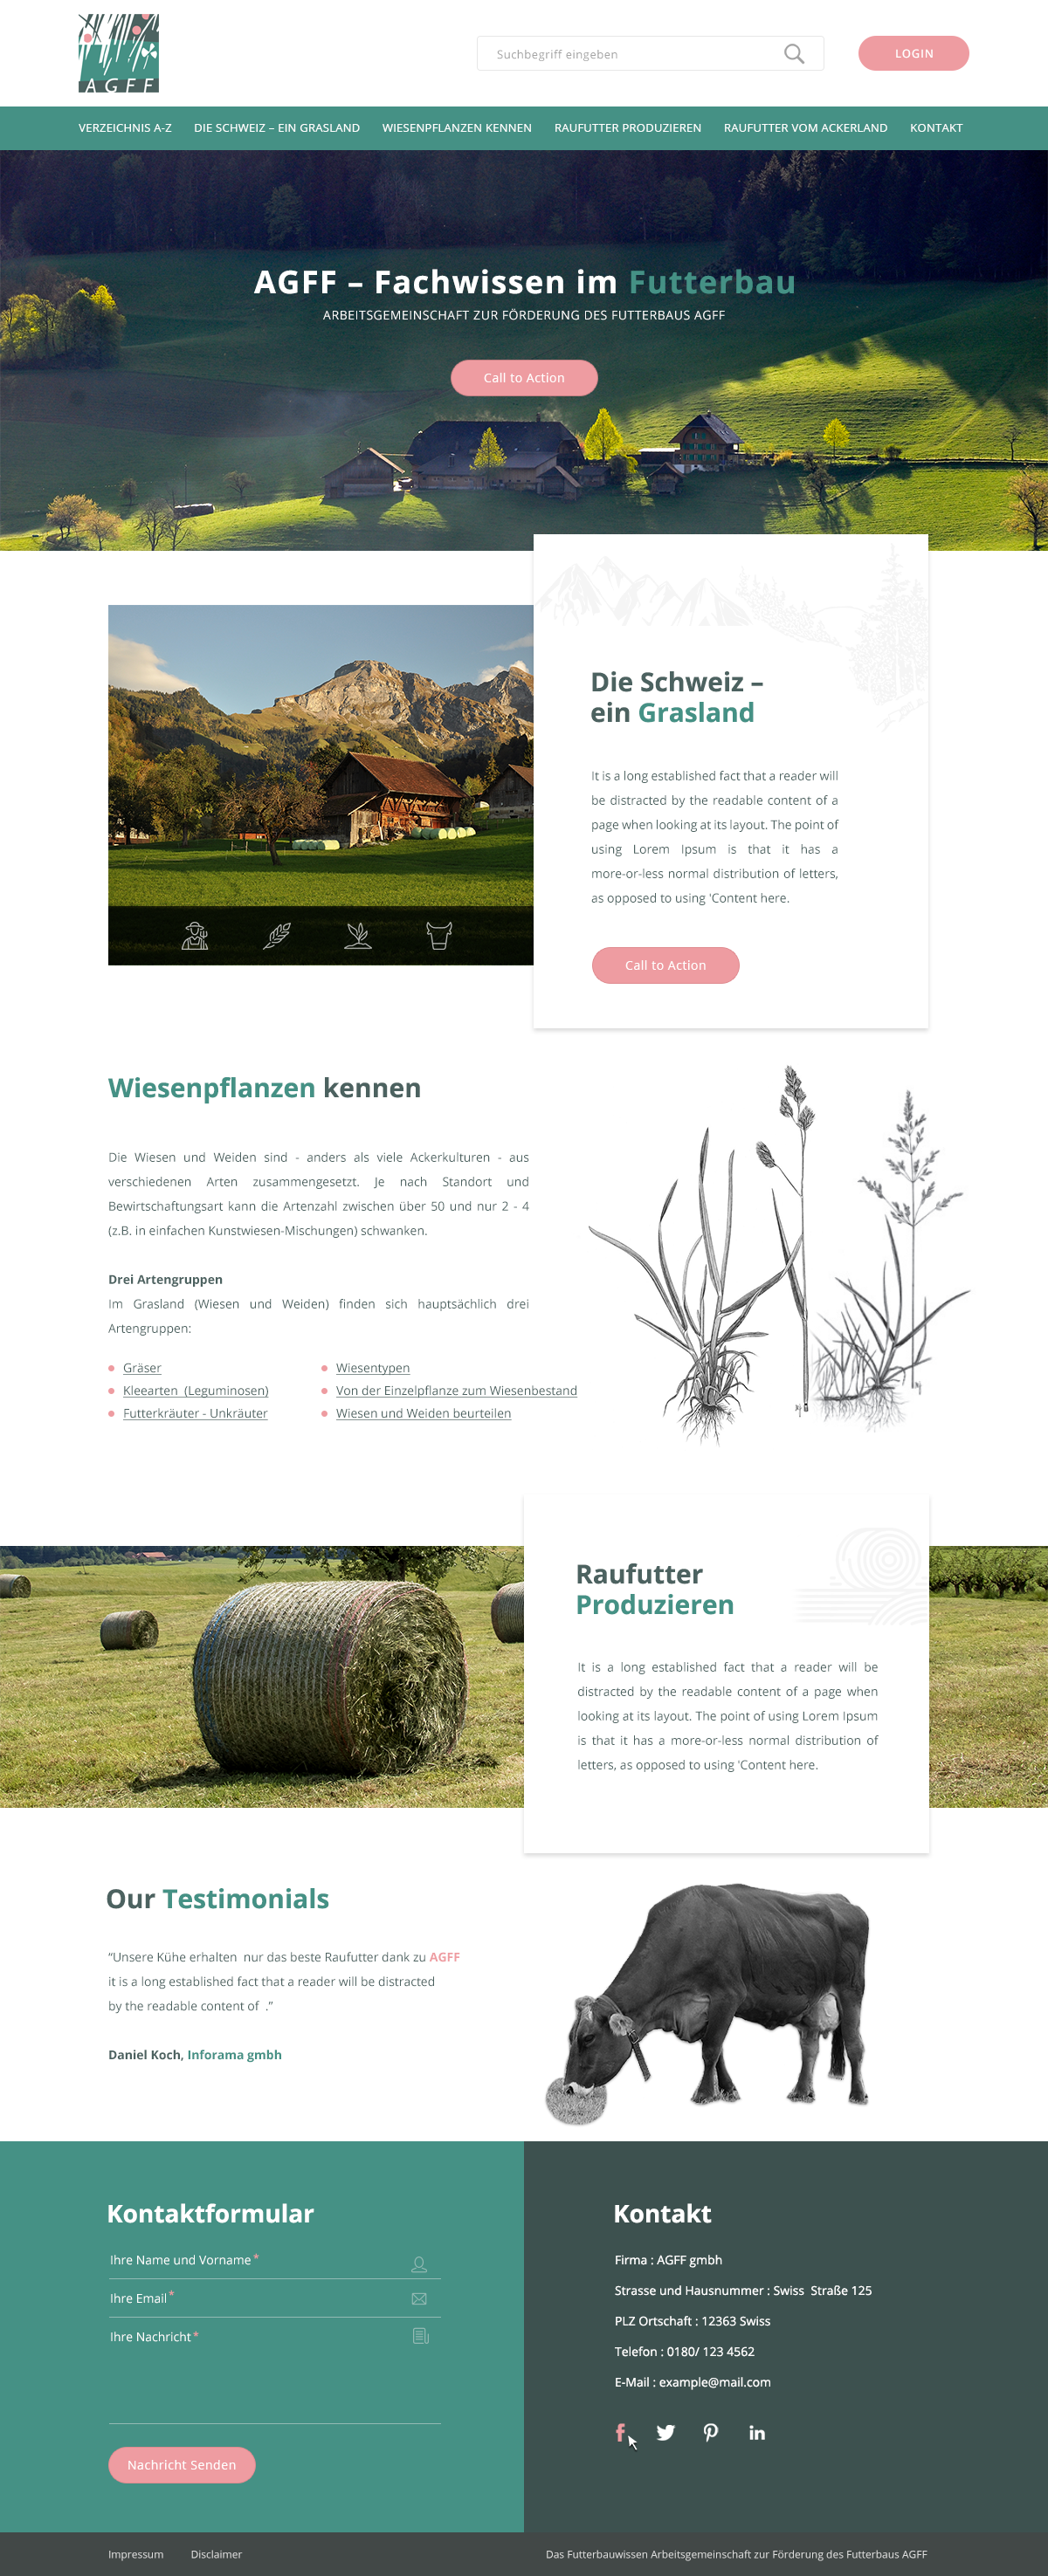 Bootstrap 4 responsive layout for the 2 pages (HTML/css)